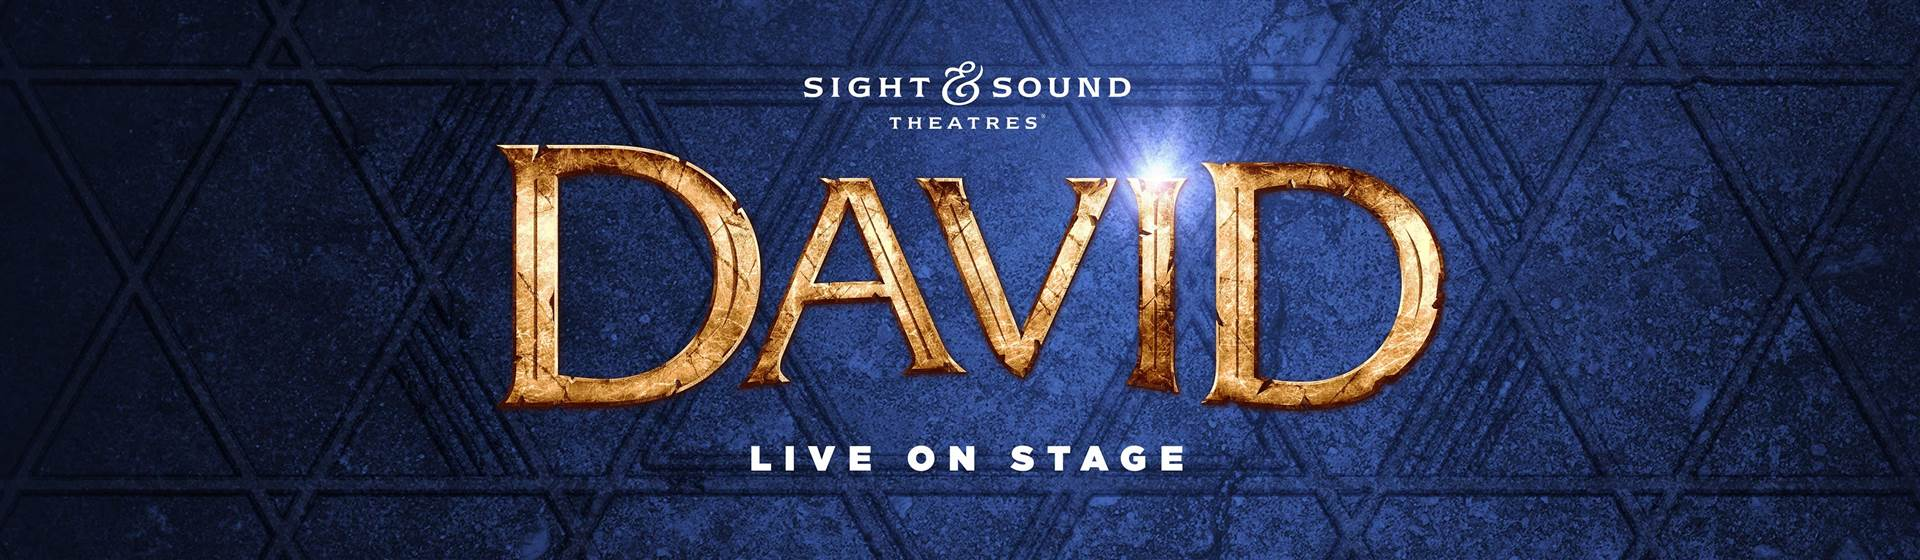 Coming Soon: 'David' at Sight & Sound Theater!